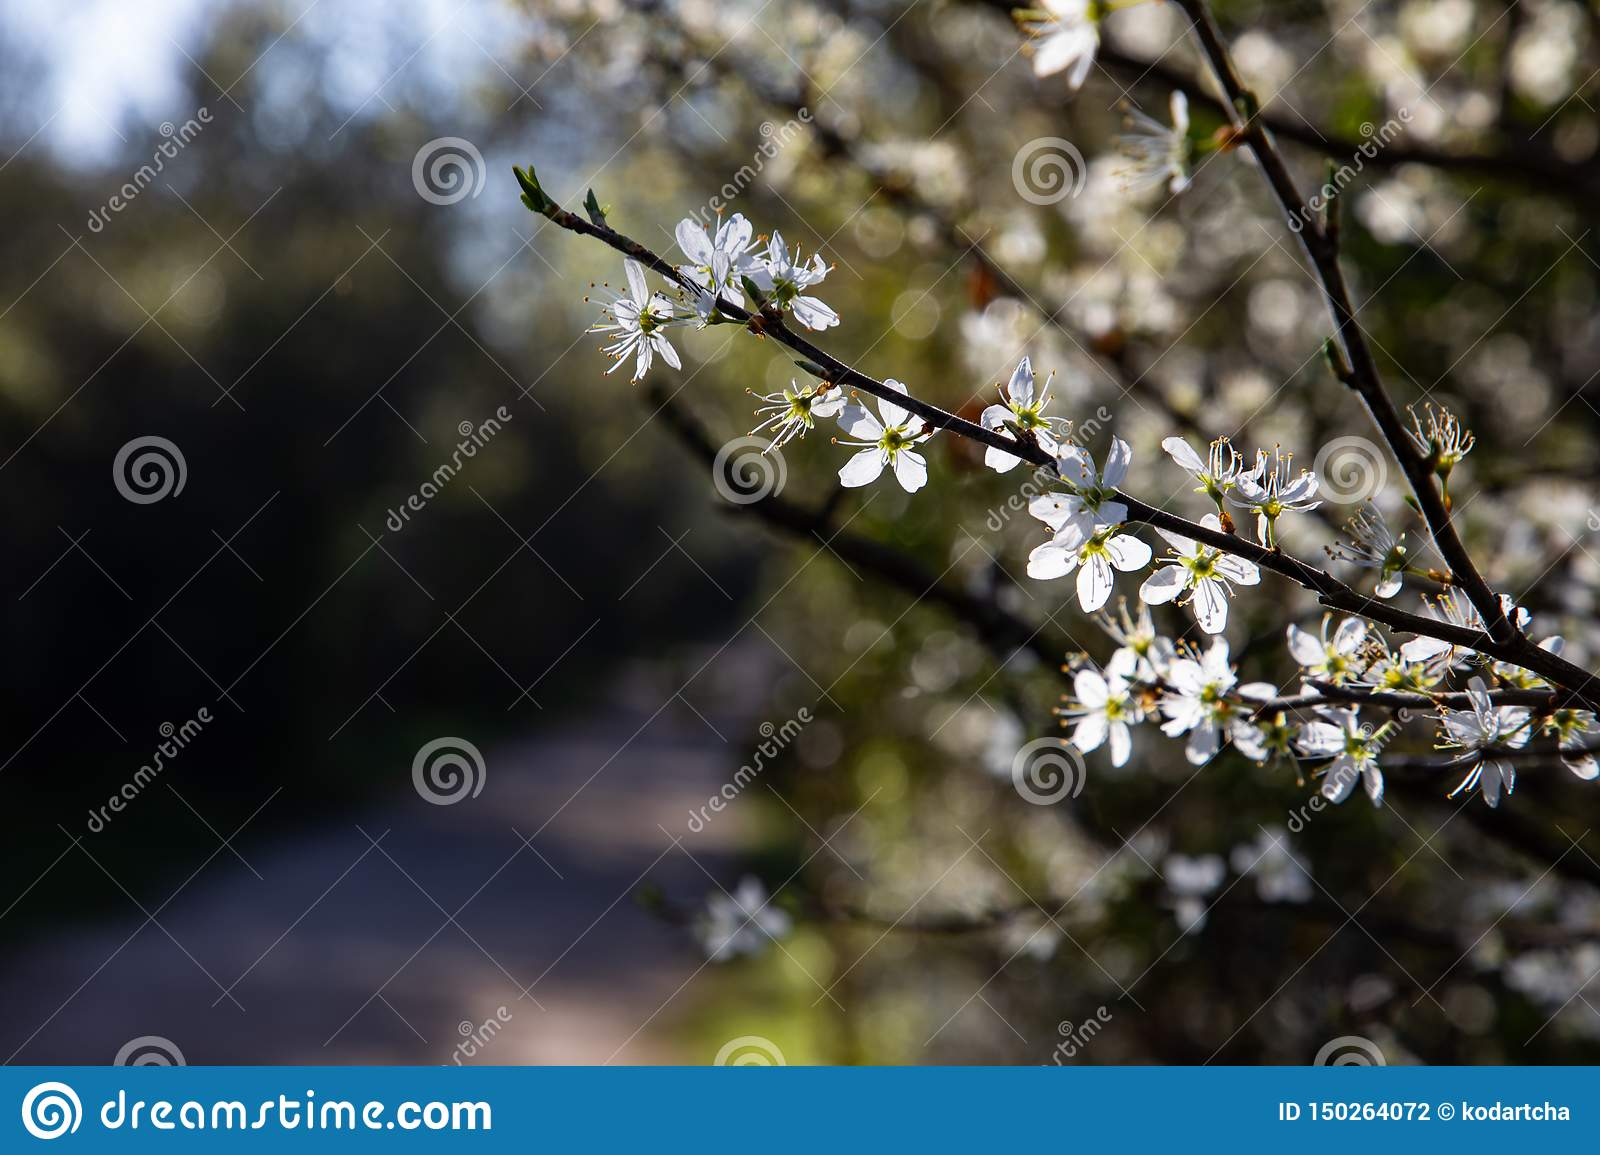 Close up of branches with white flowers and copy space